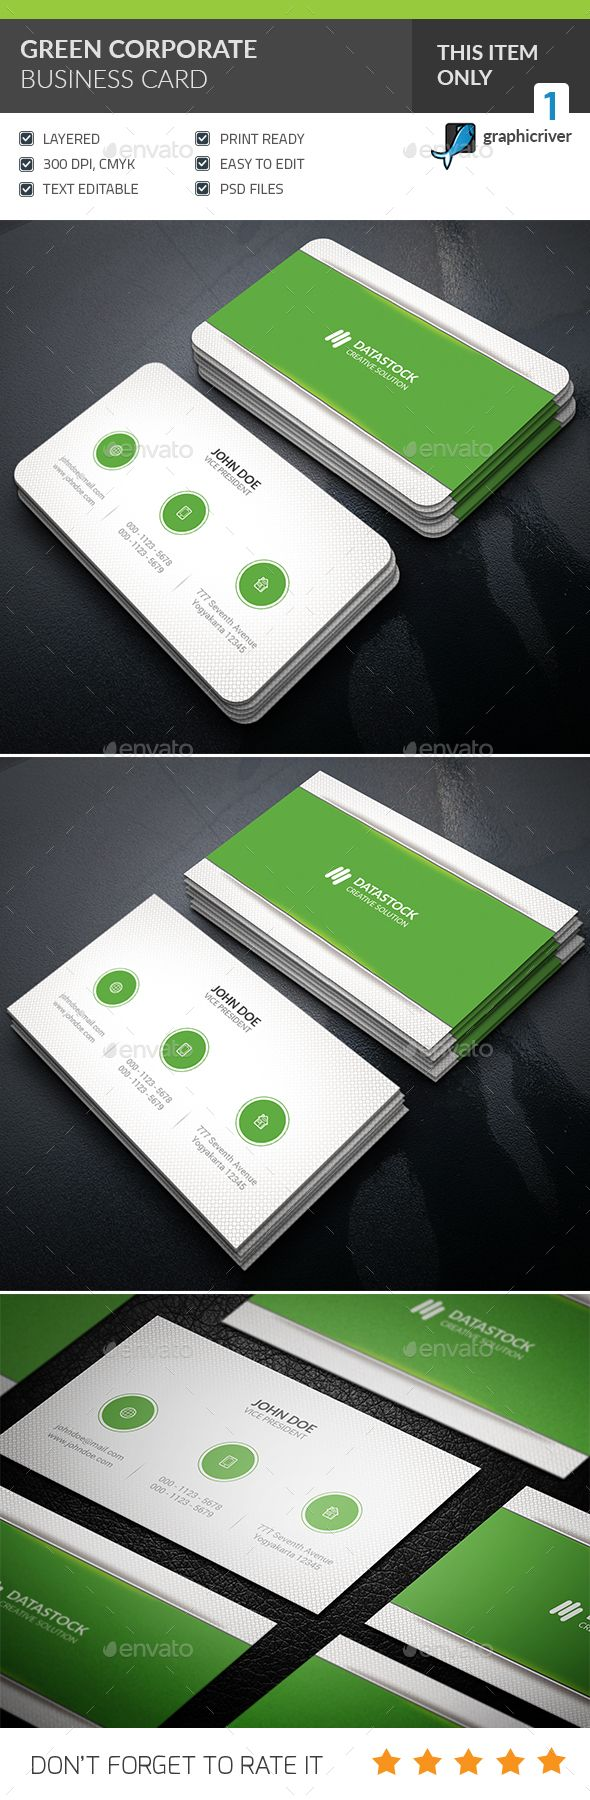 Green Corporate Business Card Design - Corporate Business Card Template PSD. Download here: https://graphicriver.net/item/green-corporate-business-card-/16936397?s_rank=3&ref=yinkira